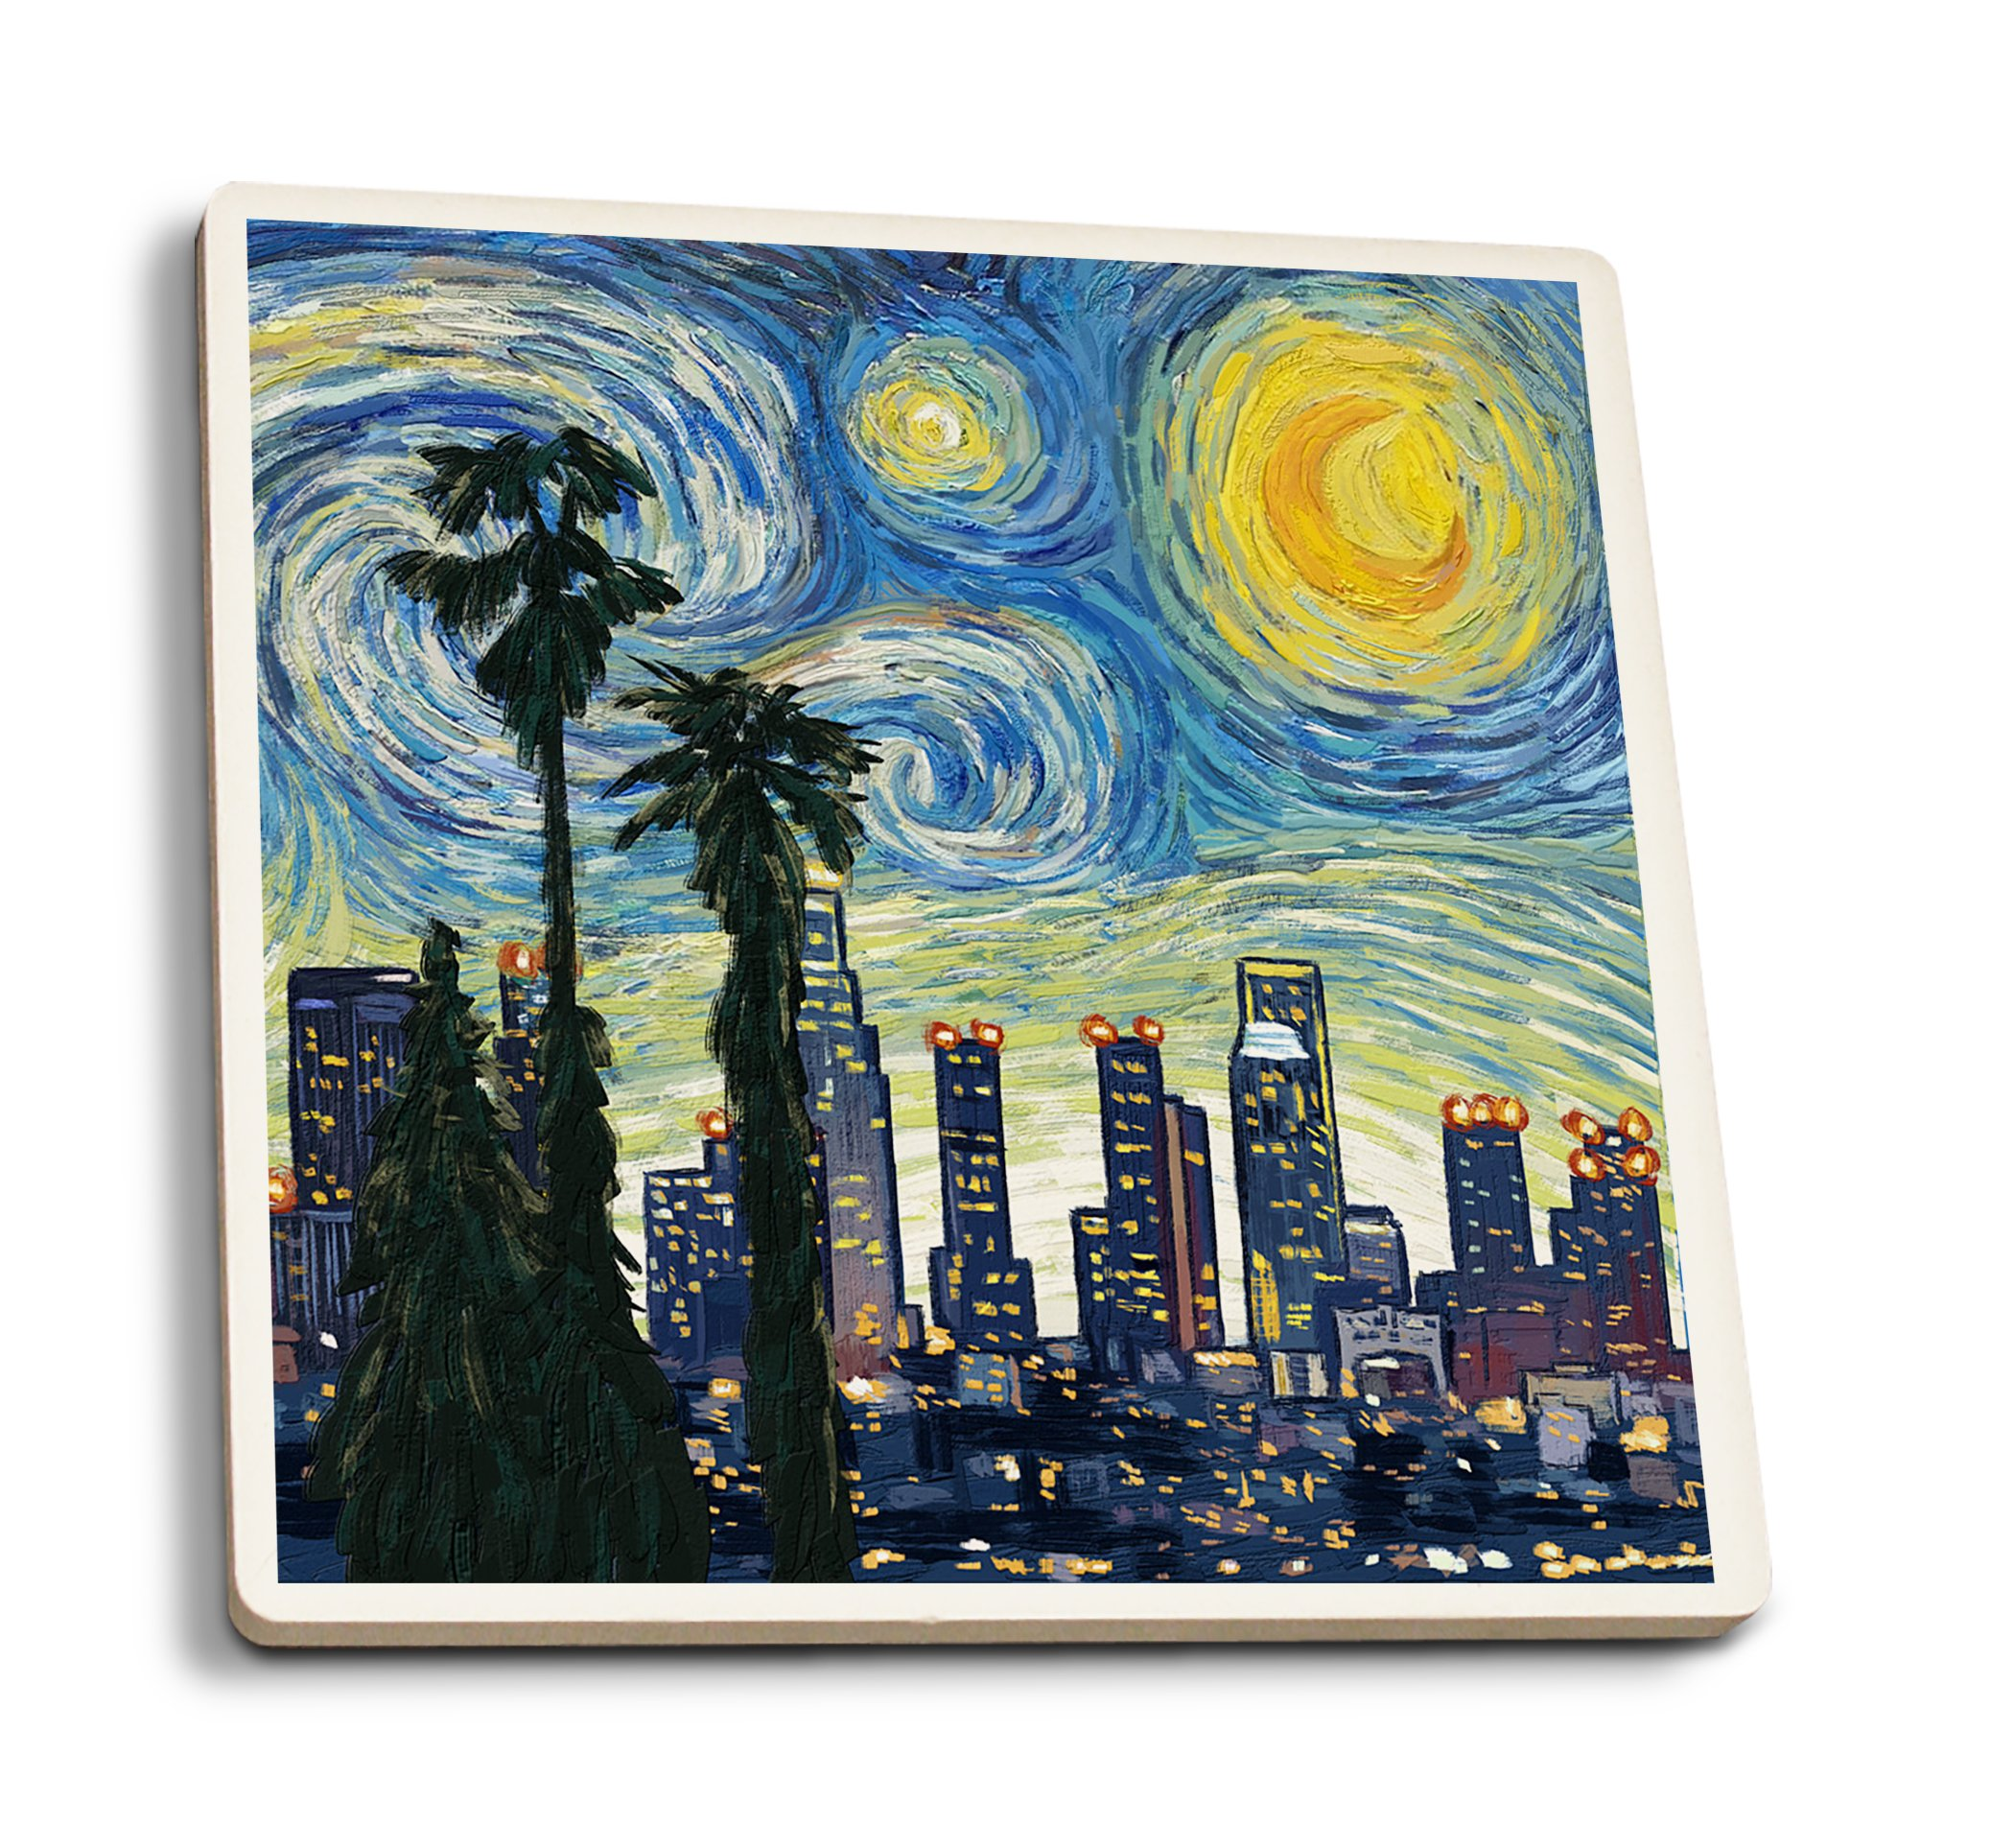 Lantern Press Los Angeles, California - Skyline - Van Gogh Starry Night (Set of 4 Ceramic Coasters - Cork-Backed, Absorbent)